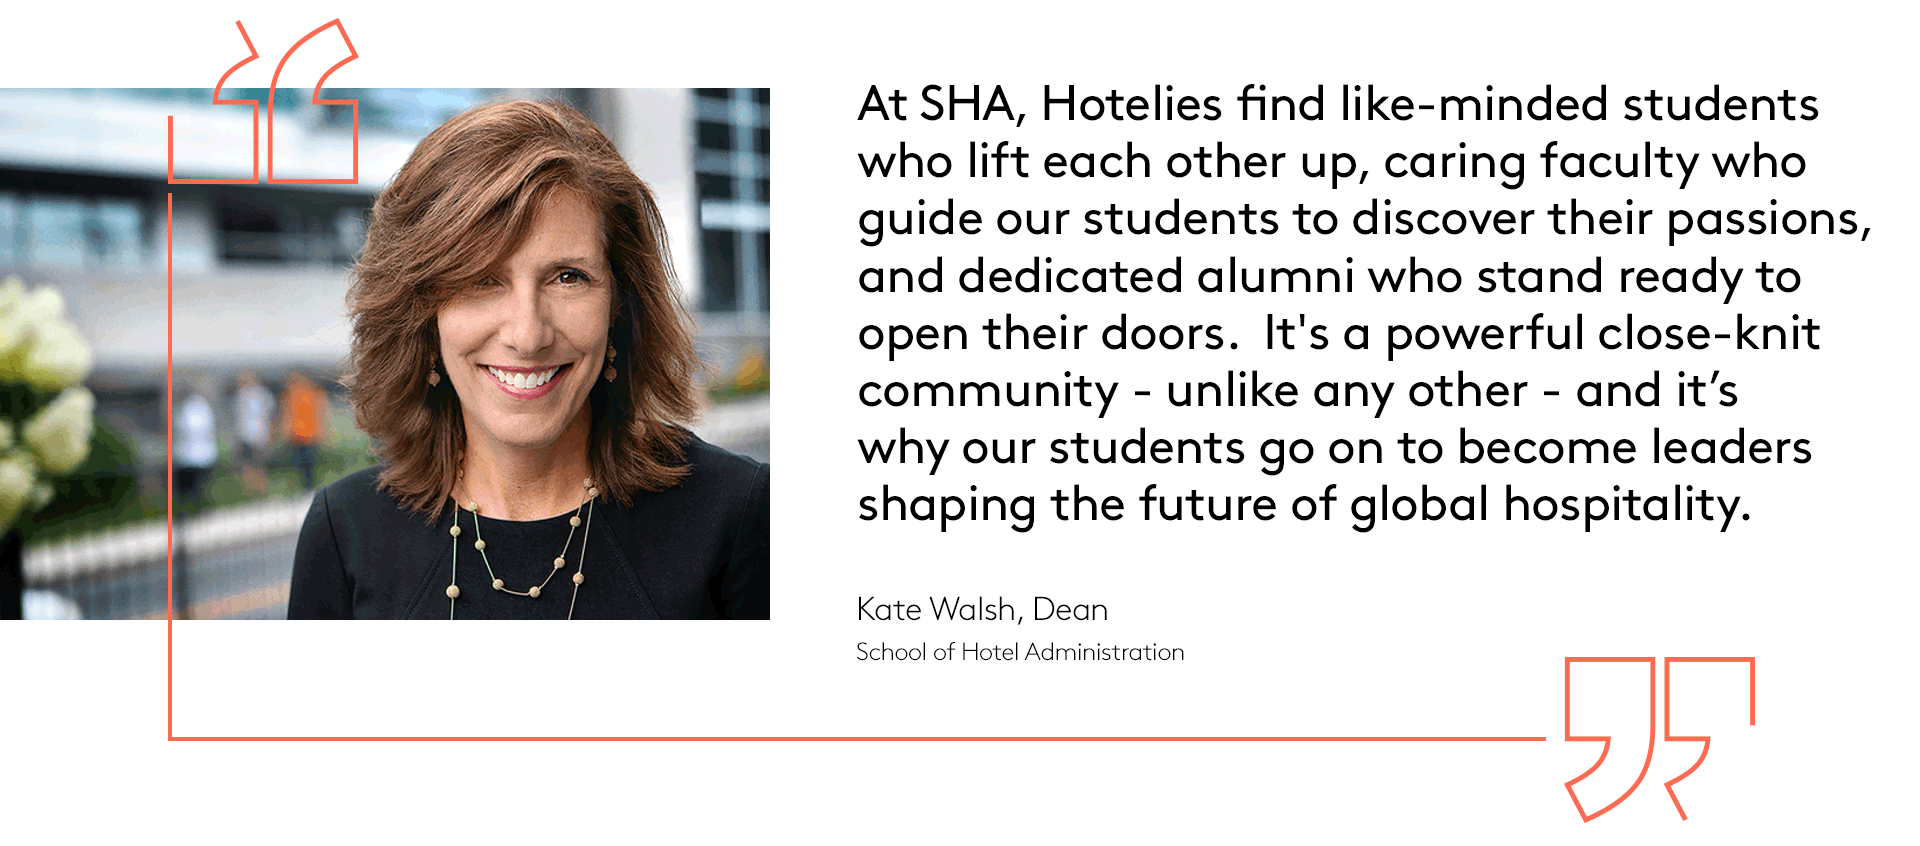 Headshot and quote from SHA Dean Kate Walsh about the community Hotelies find on campus